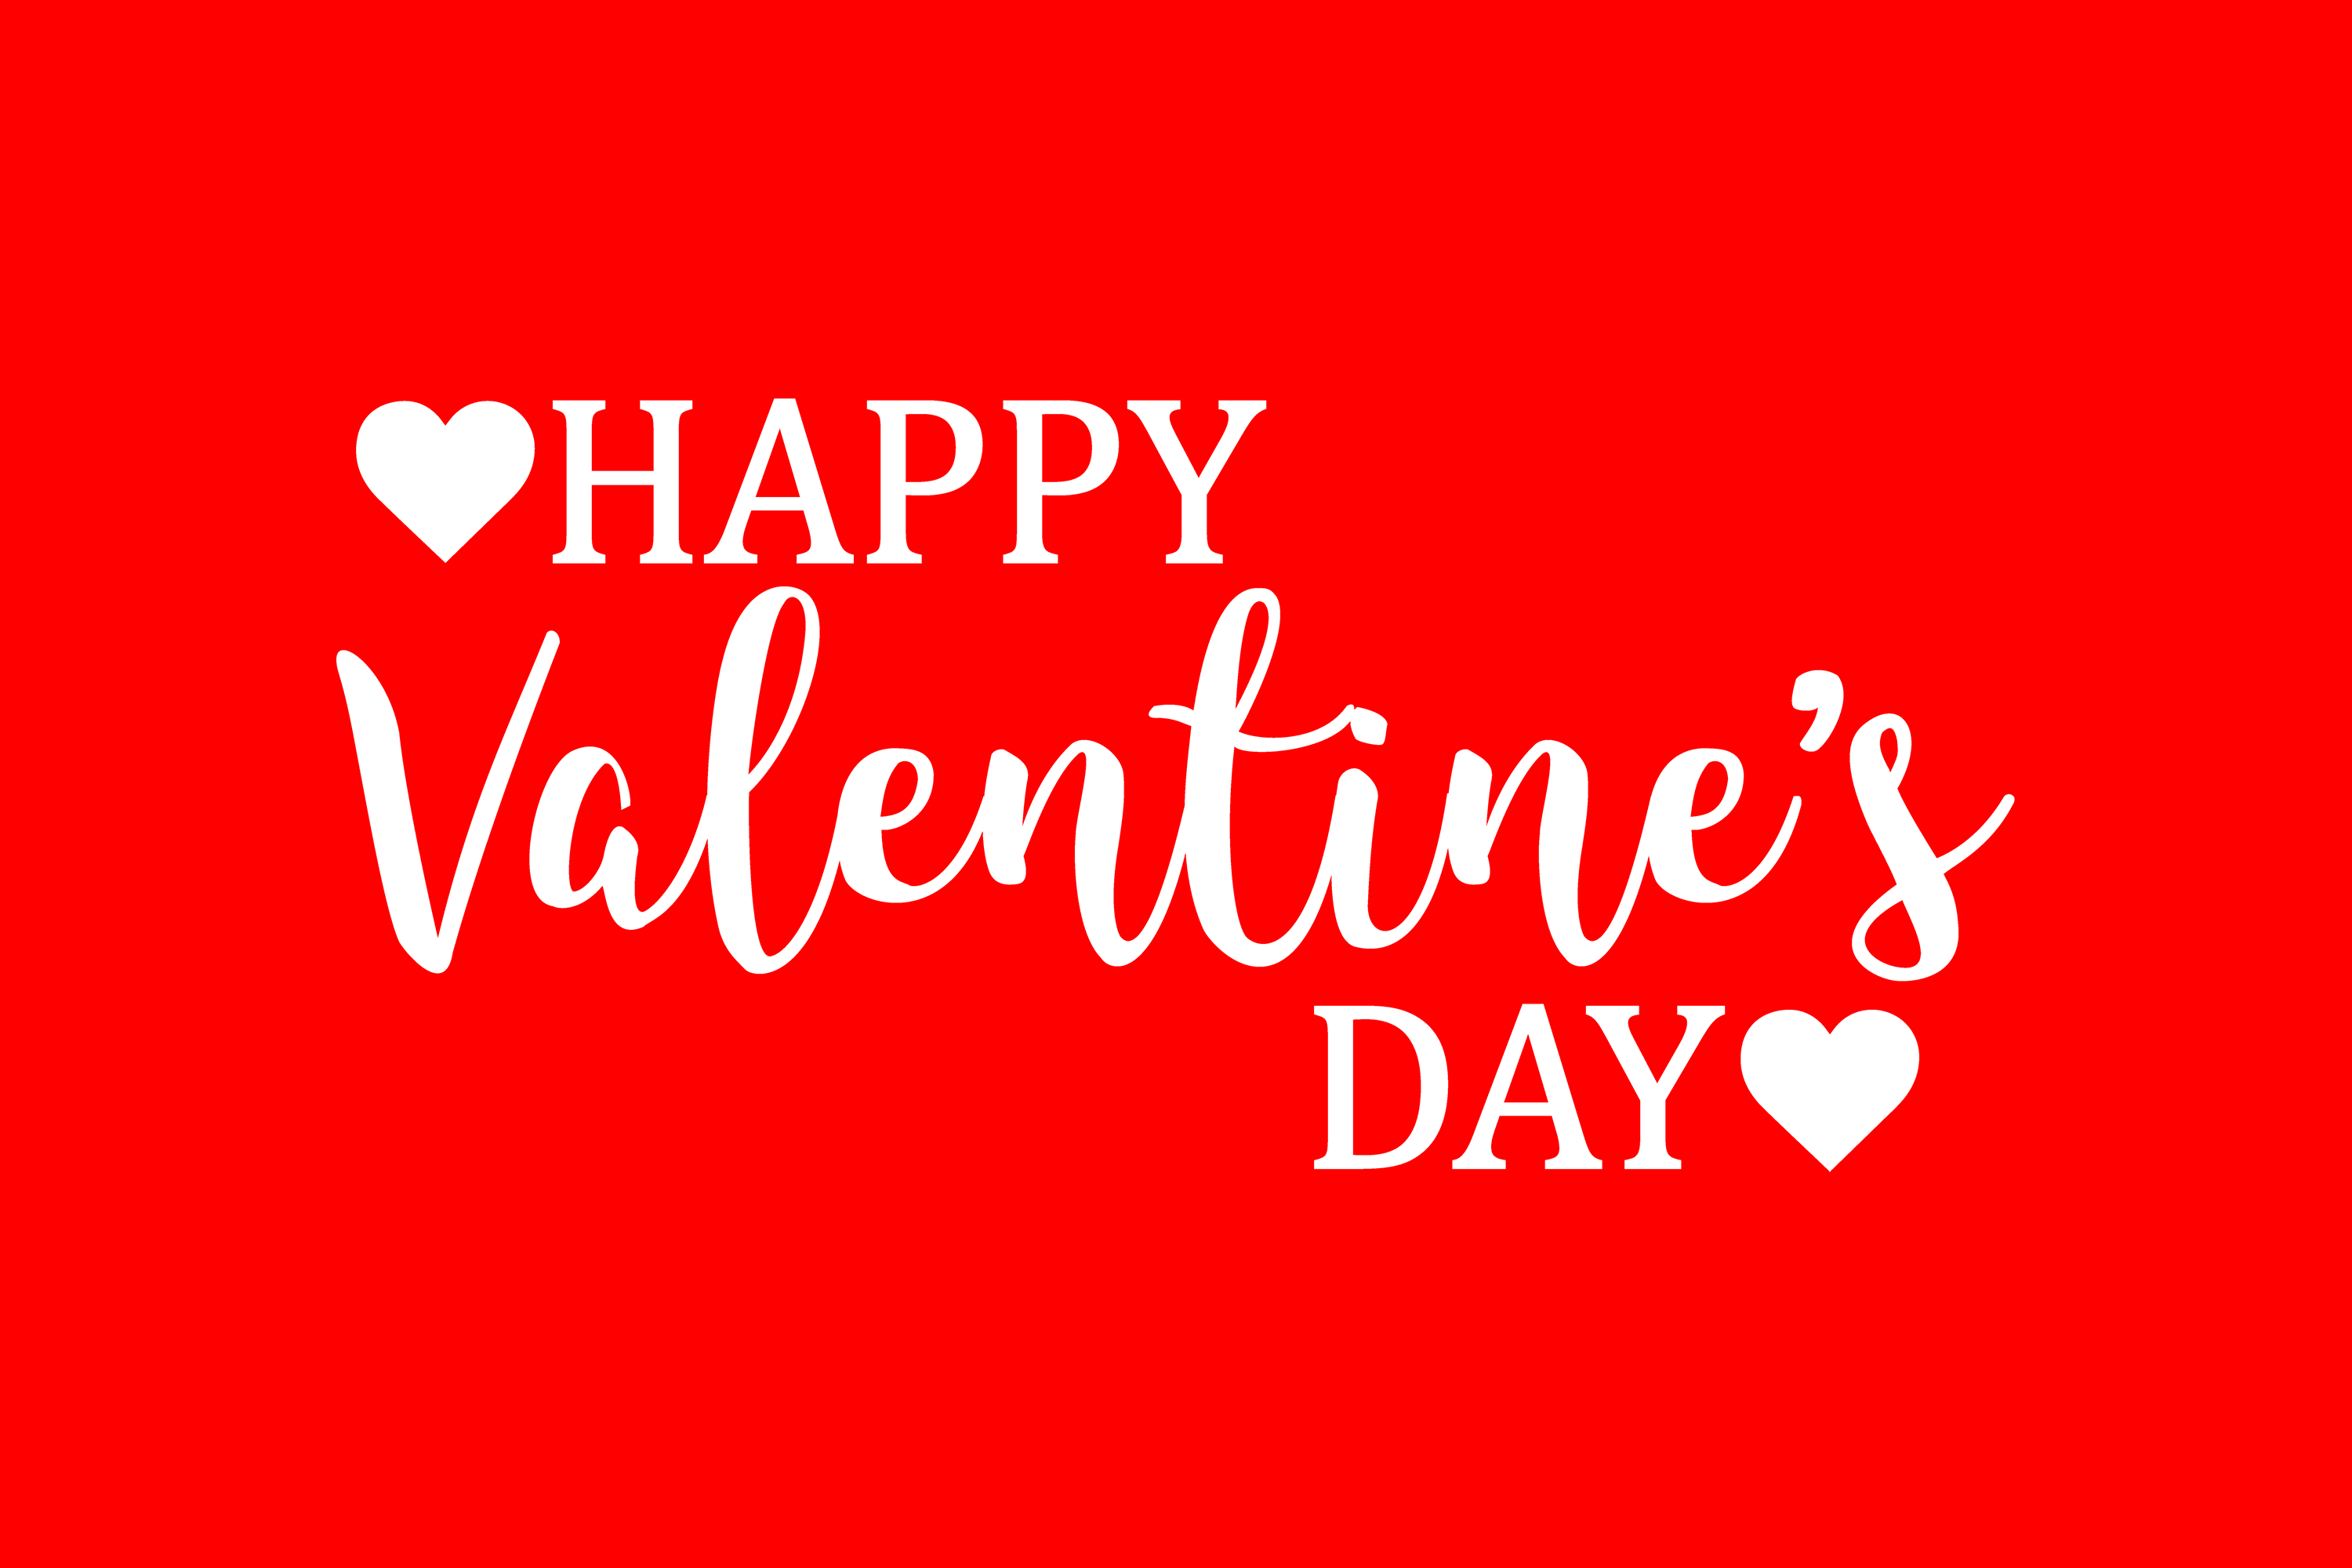 72+] Happy Valentine's Day Wallpaper Backgrounds